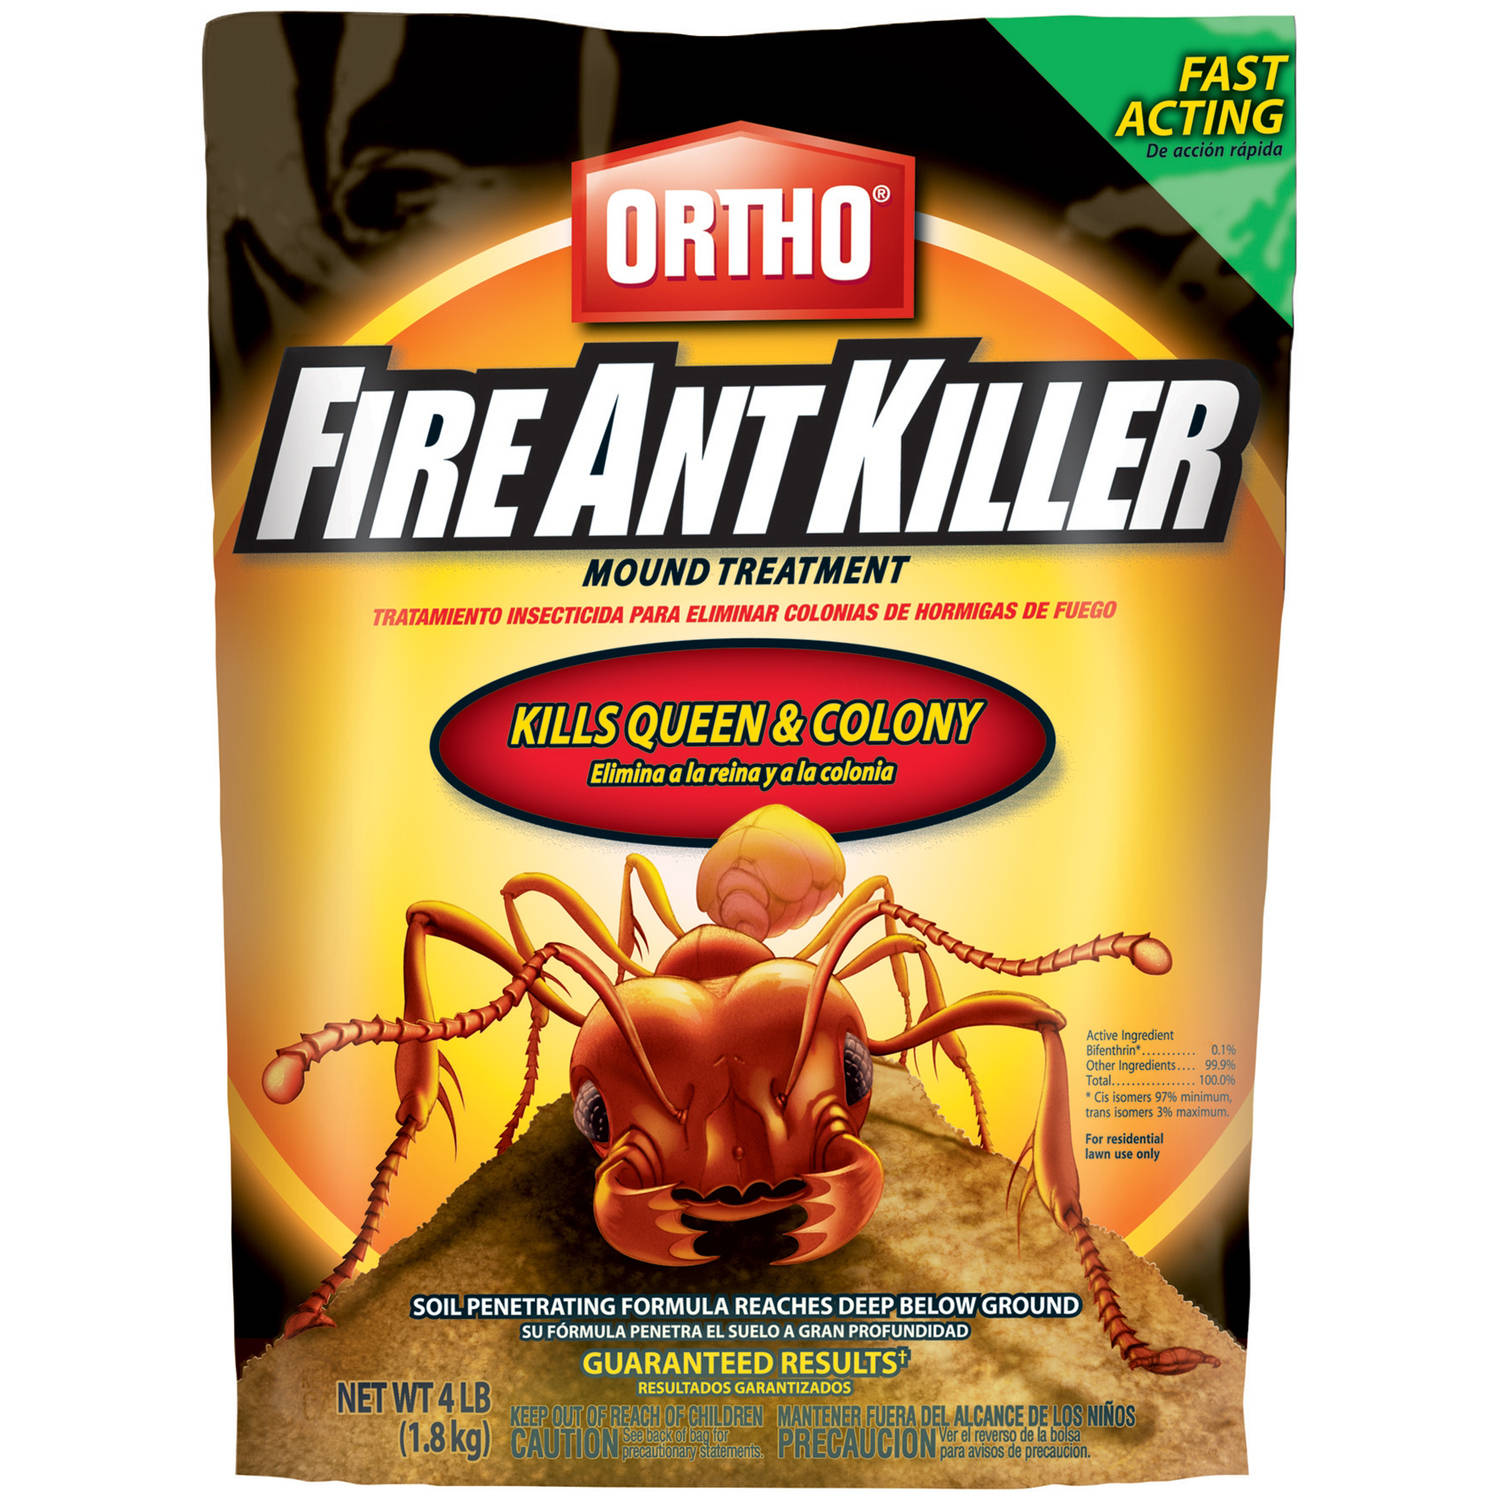 Ortho Fire Ant Killer Mound Treatment, 4 lb